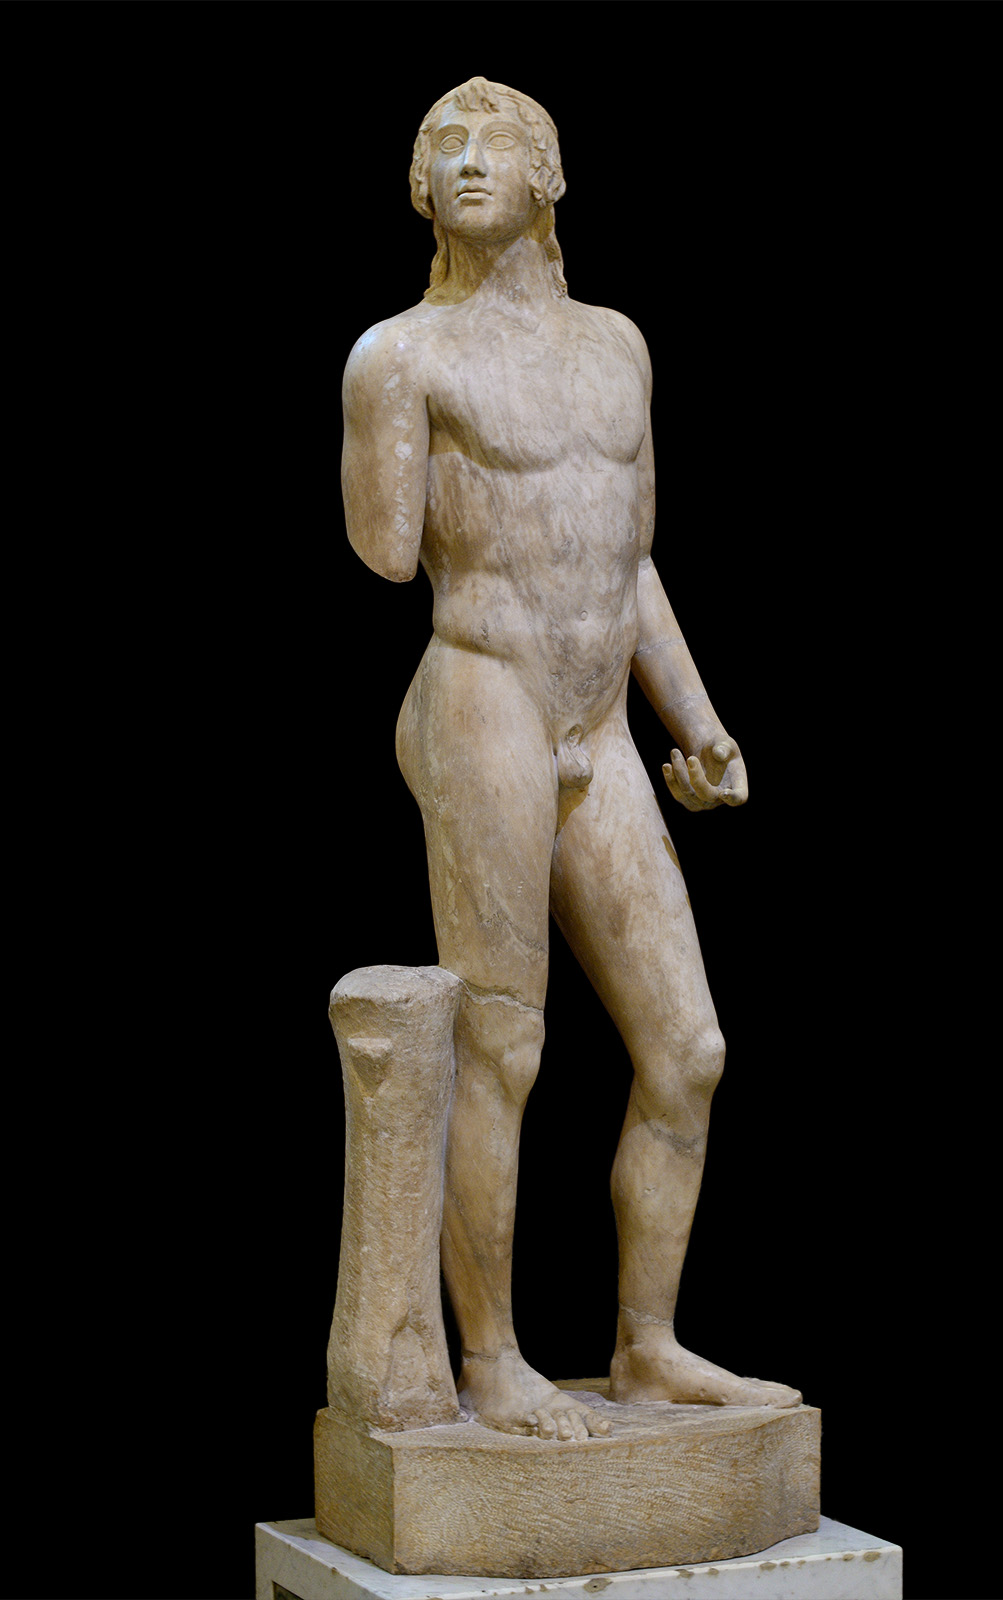 The Soranzo Eros. Marble. Roman copy of the 1st cent. CE after a Greek original of ca. 460 BCE, or original Roman work of Classic style of the 1st cent. CE. Inv. No. Гр-3095 / А.192. Saint Petersburg, The State Hermitage Museum